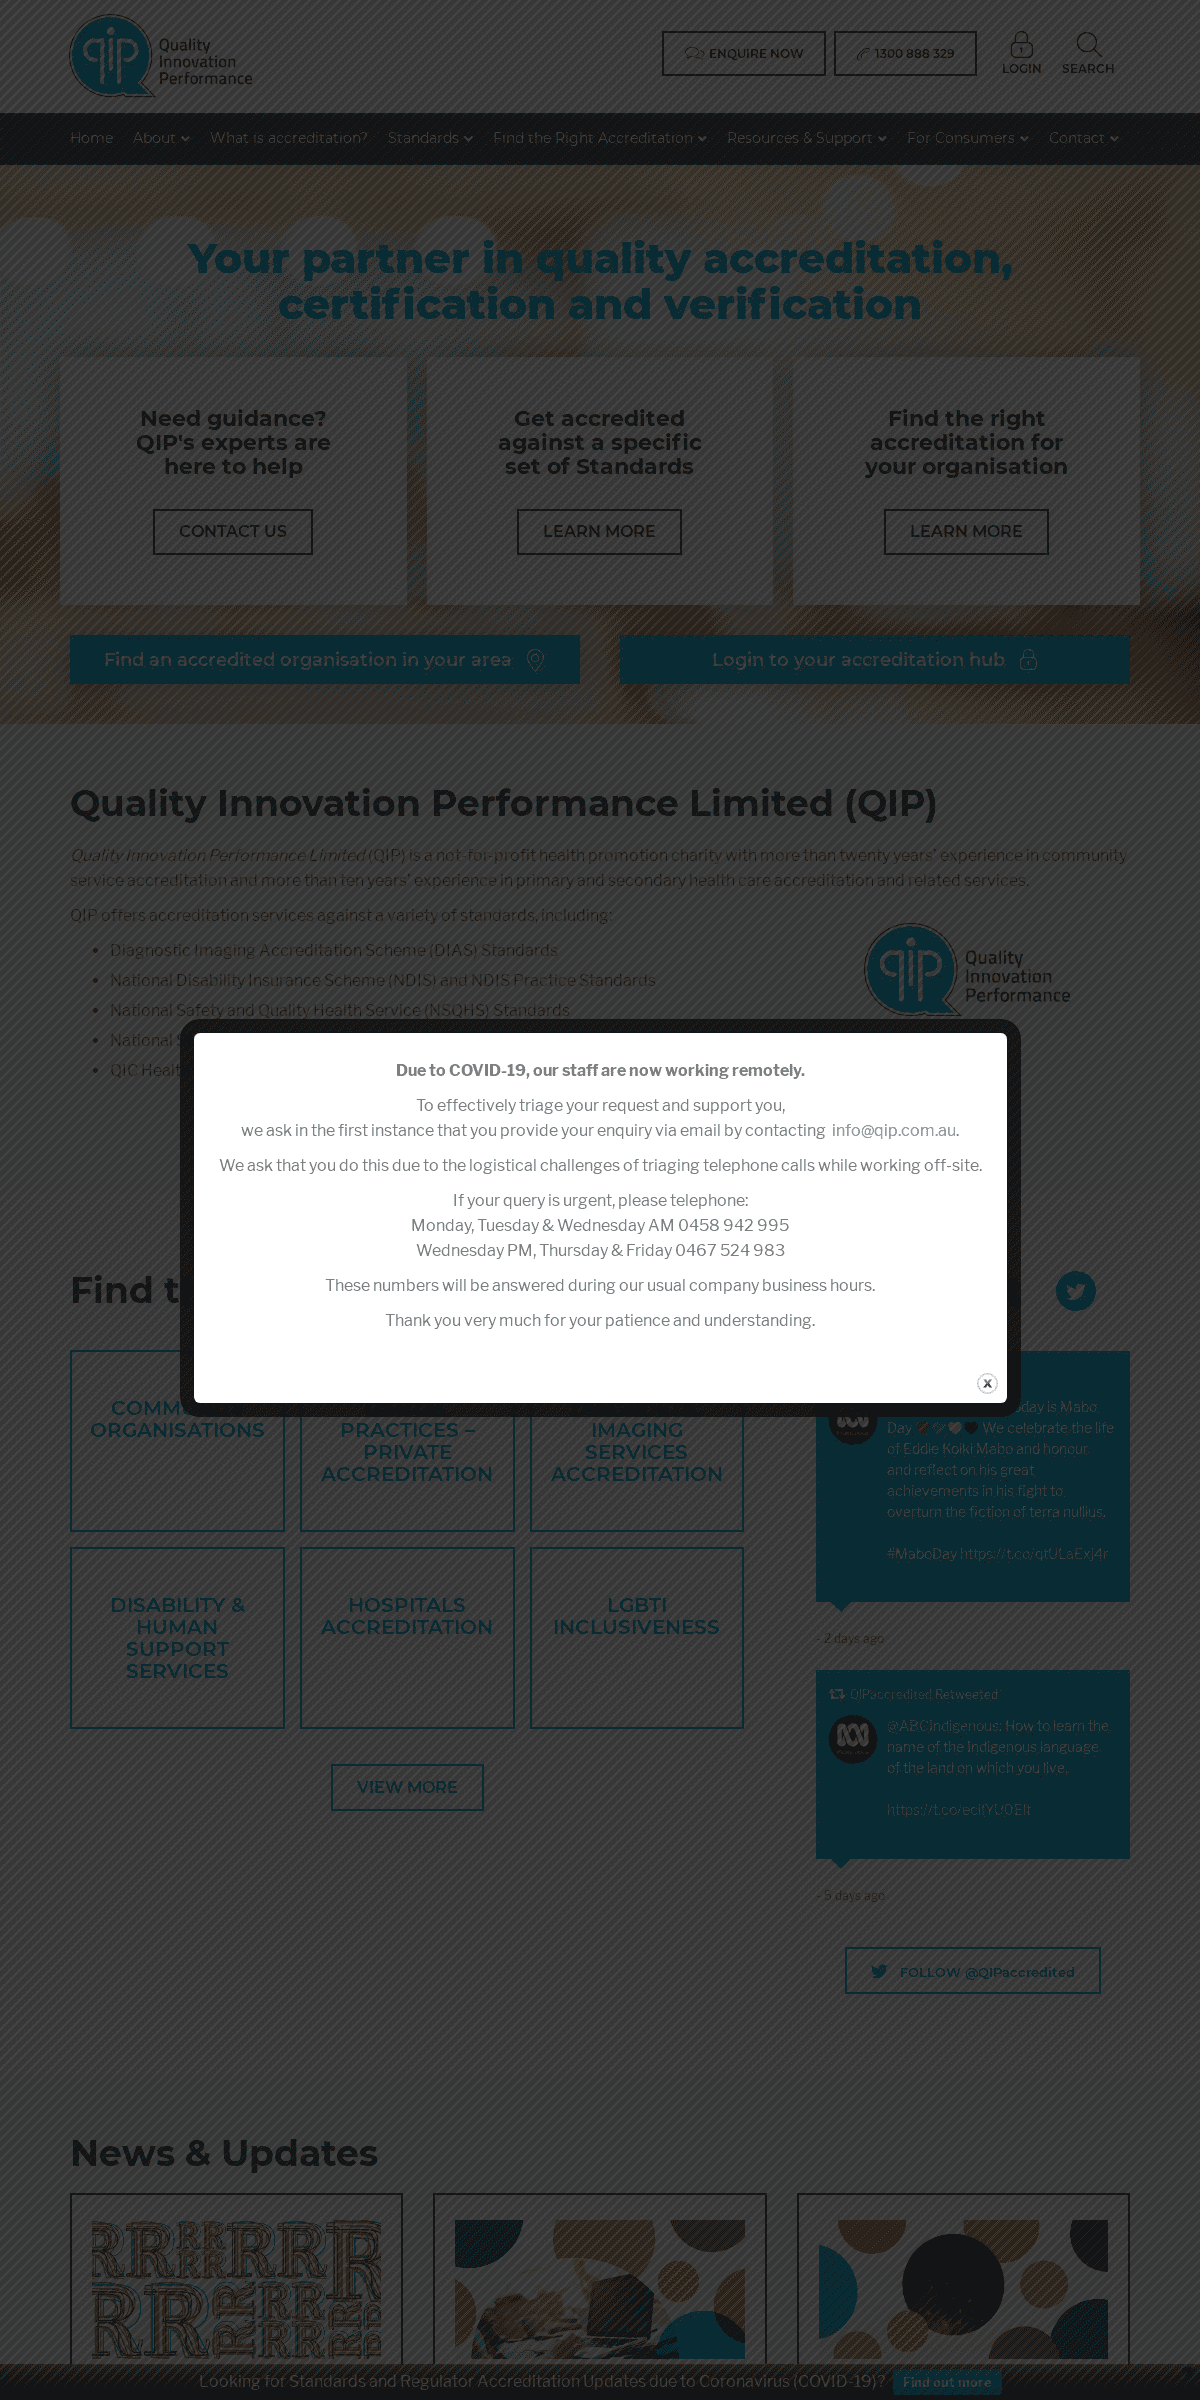 QIP - Quality Innovation Performance Limited